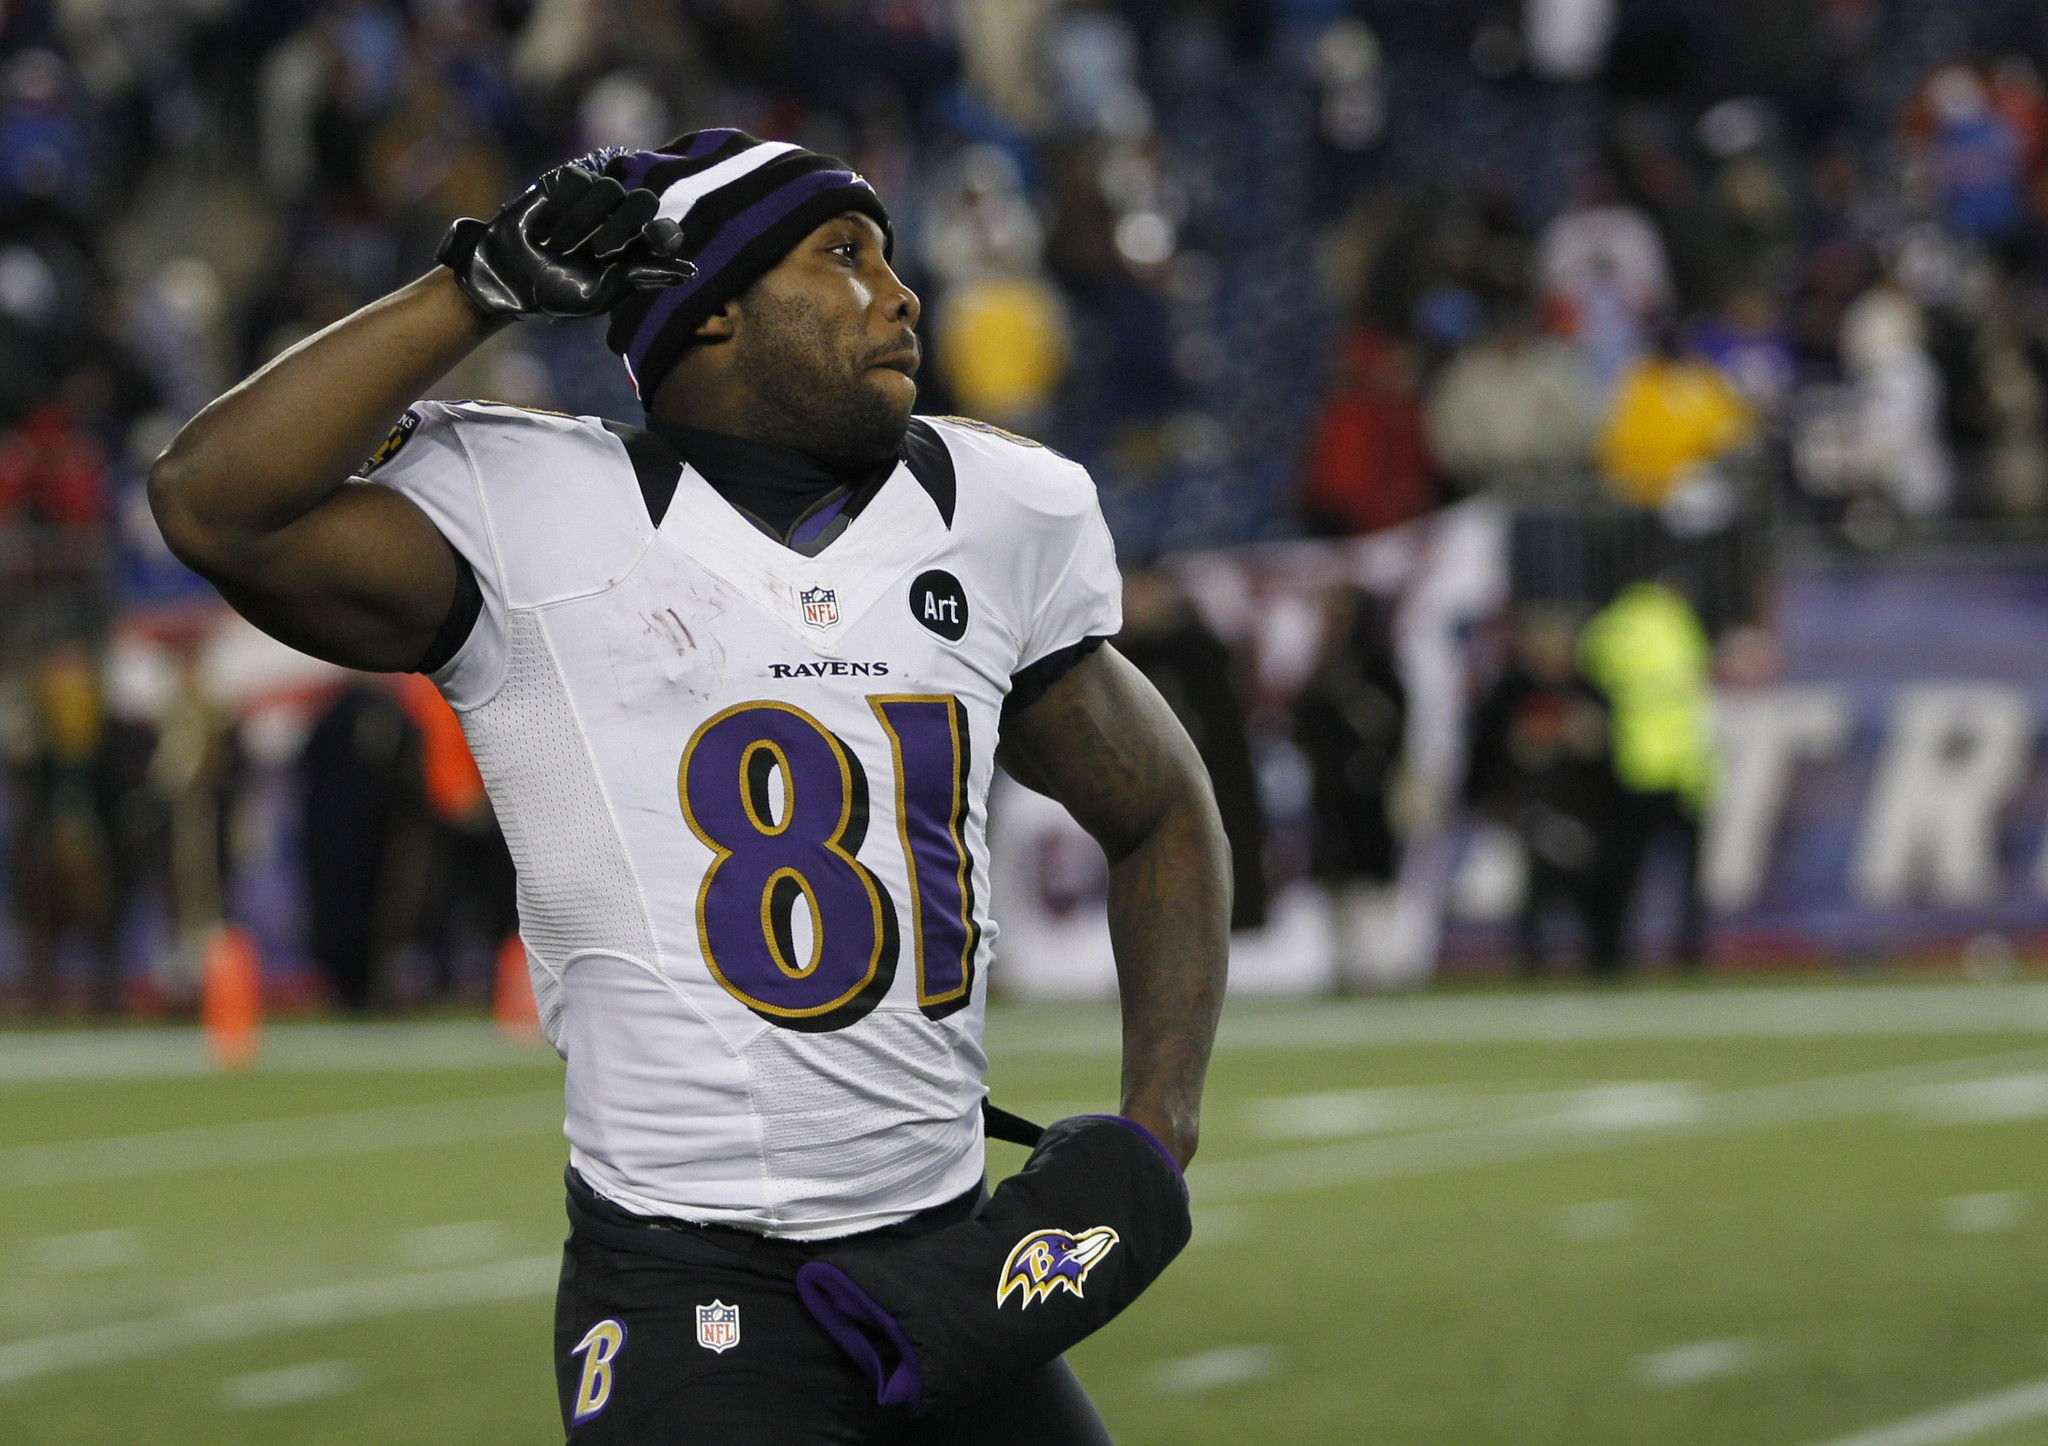 Bal-ravens-mailbag-could-they-still-sign-anquan-boldin-what-o-linemen-are-available-20170622